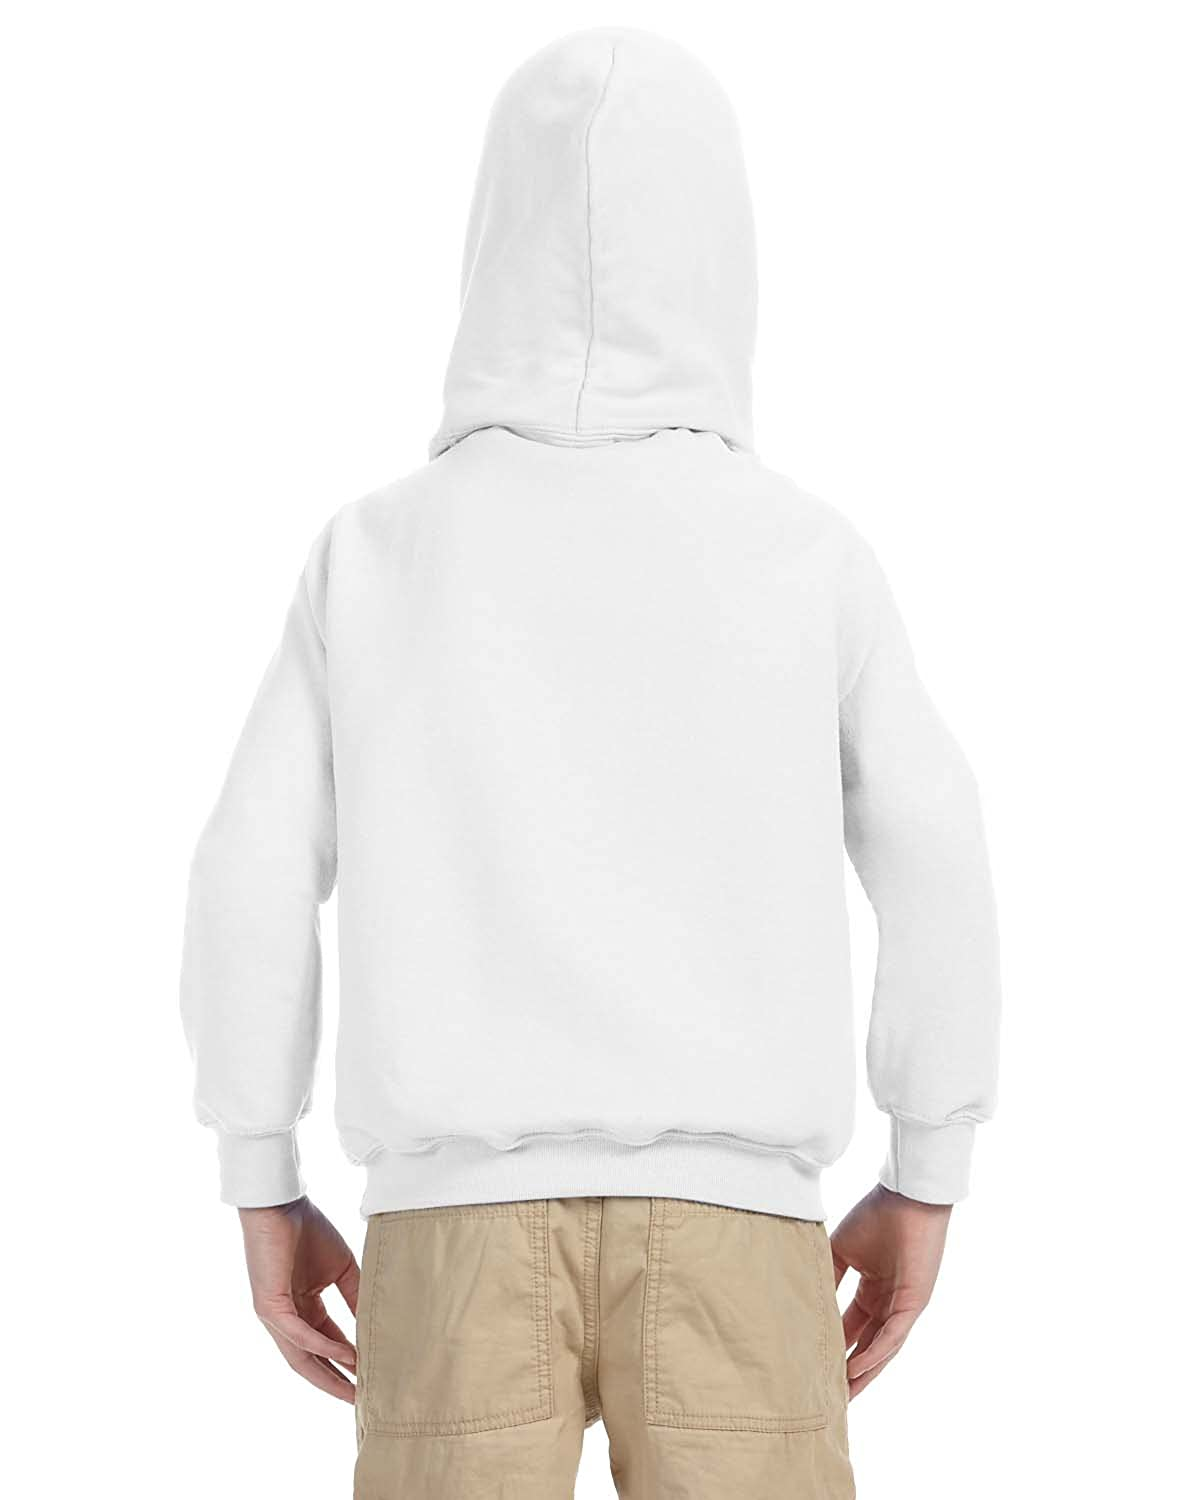 Indica Plateau Youth Number One Kids Hoodie